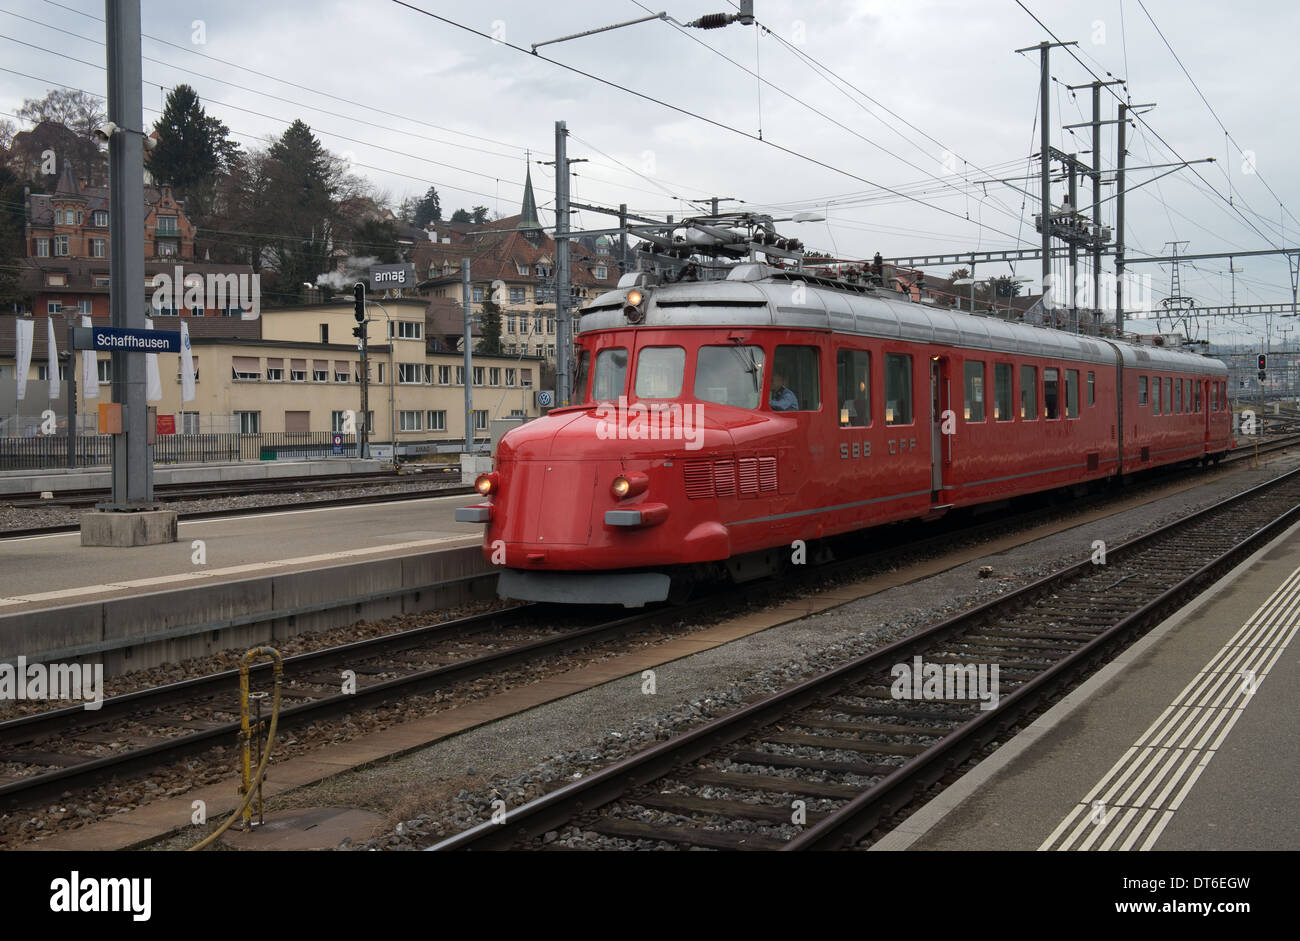 Churchill Red Arrow Multiple Unit at Schaffhausen, Switzerland -1 - Stock Image